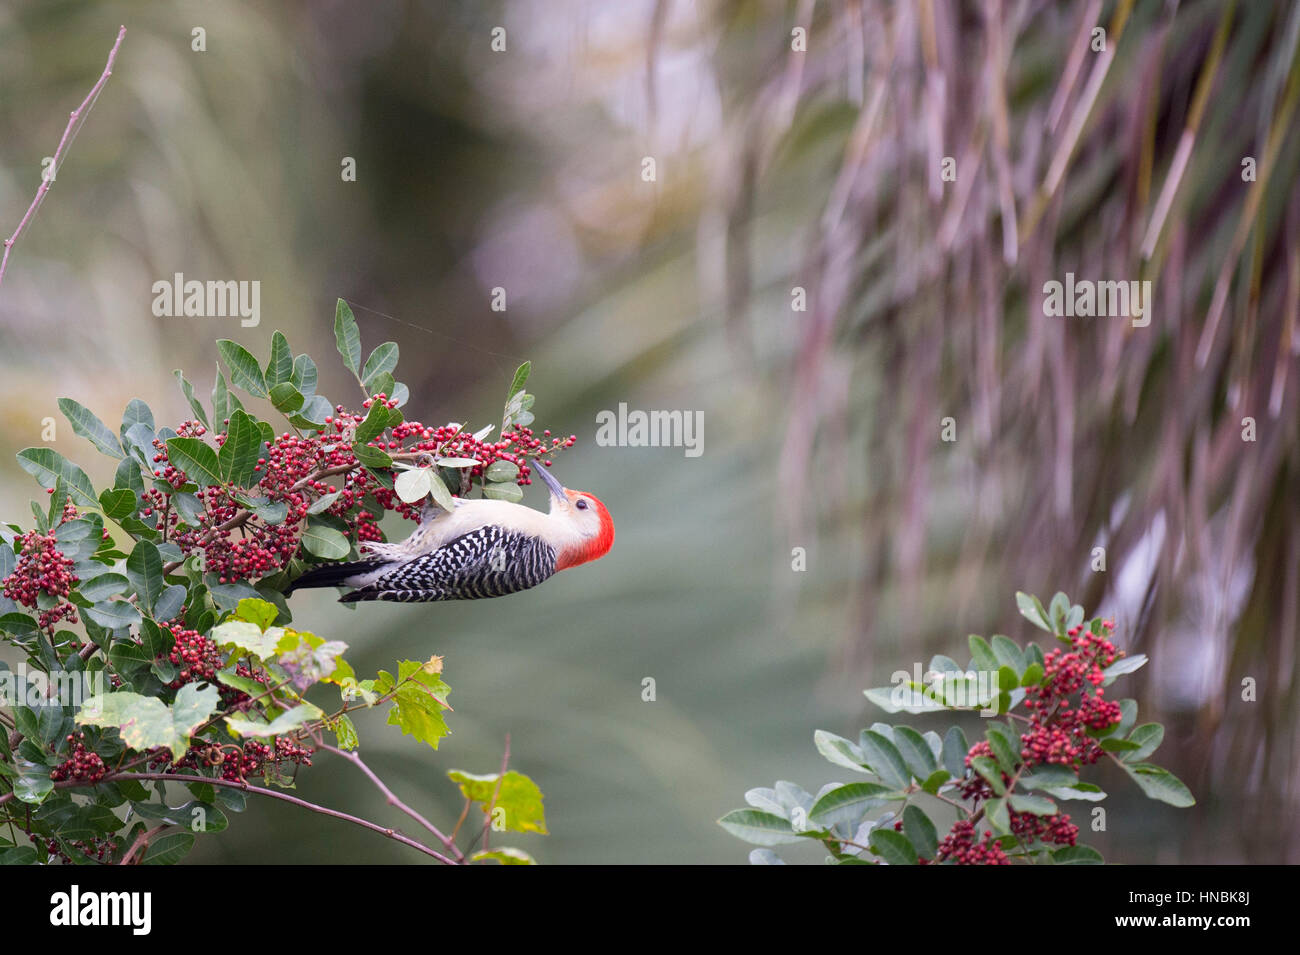 A Red-bellied Woodpecker hangs from a branch covered in red berries in soft overcast light. - Stock Image